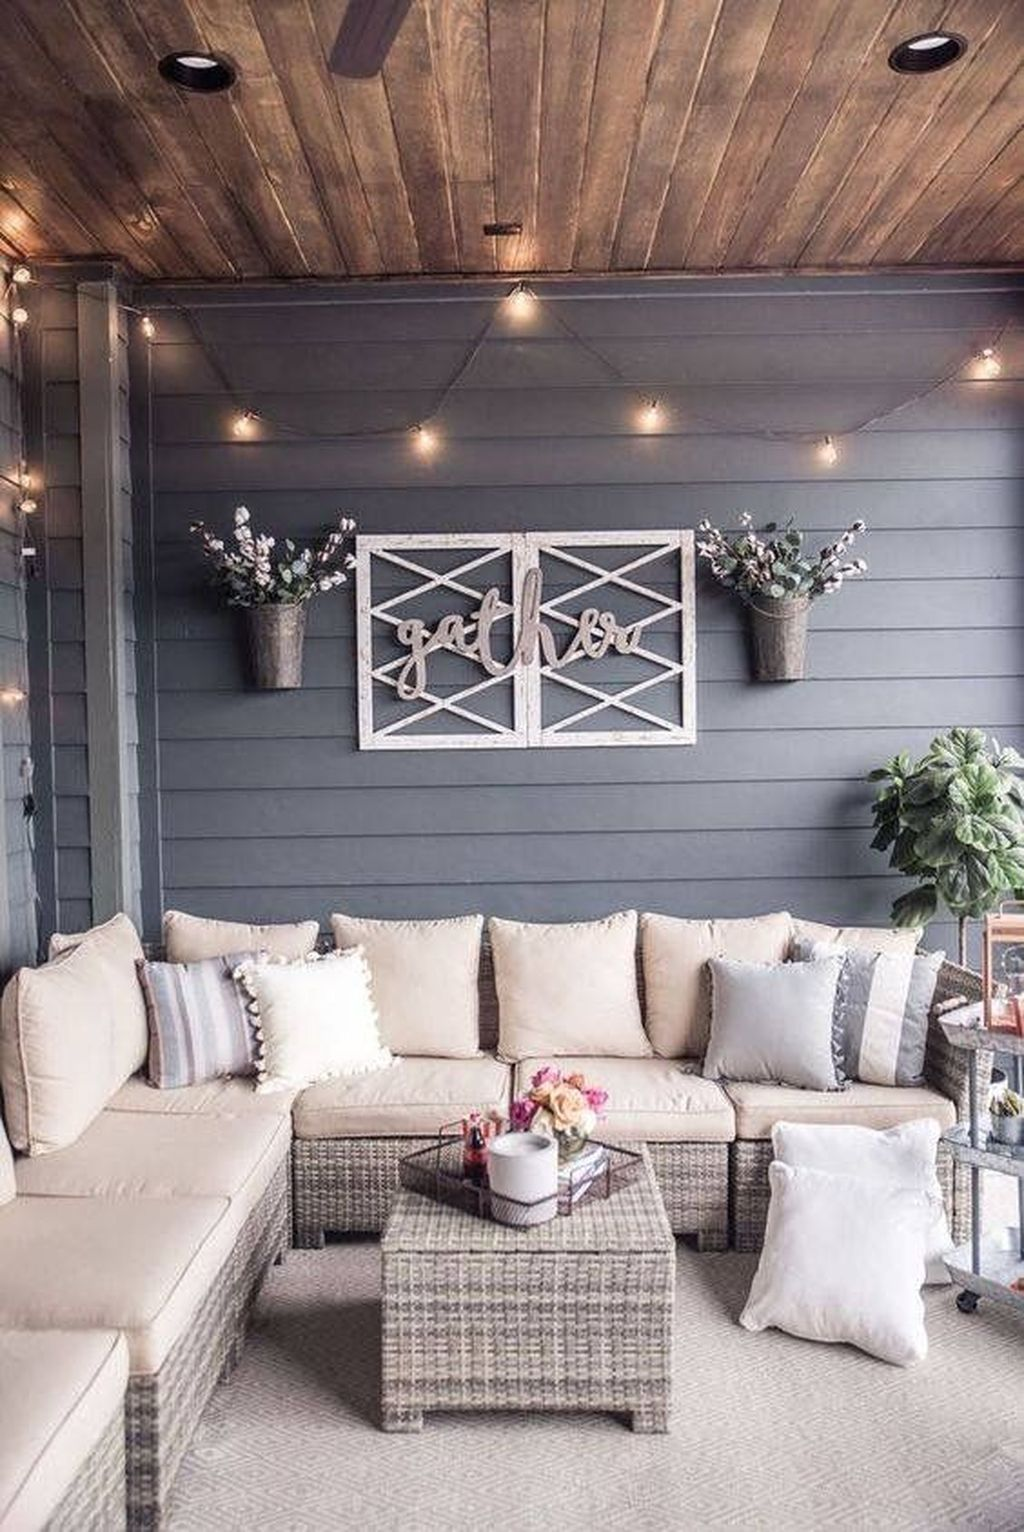 Stunning Rustic Patio Decorating Ideas 09